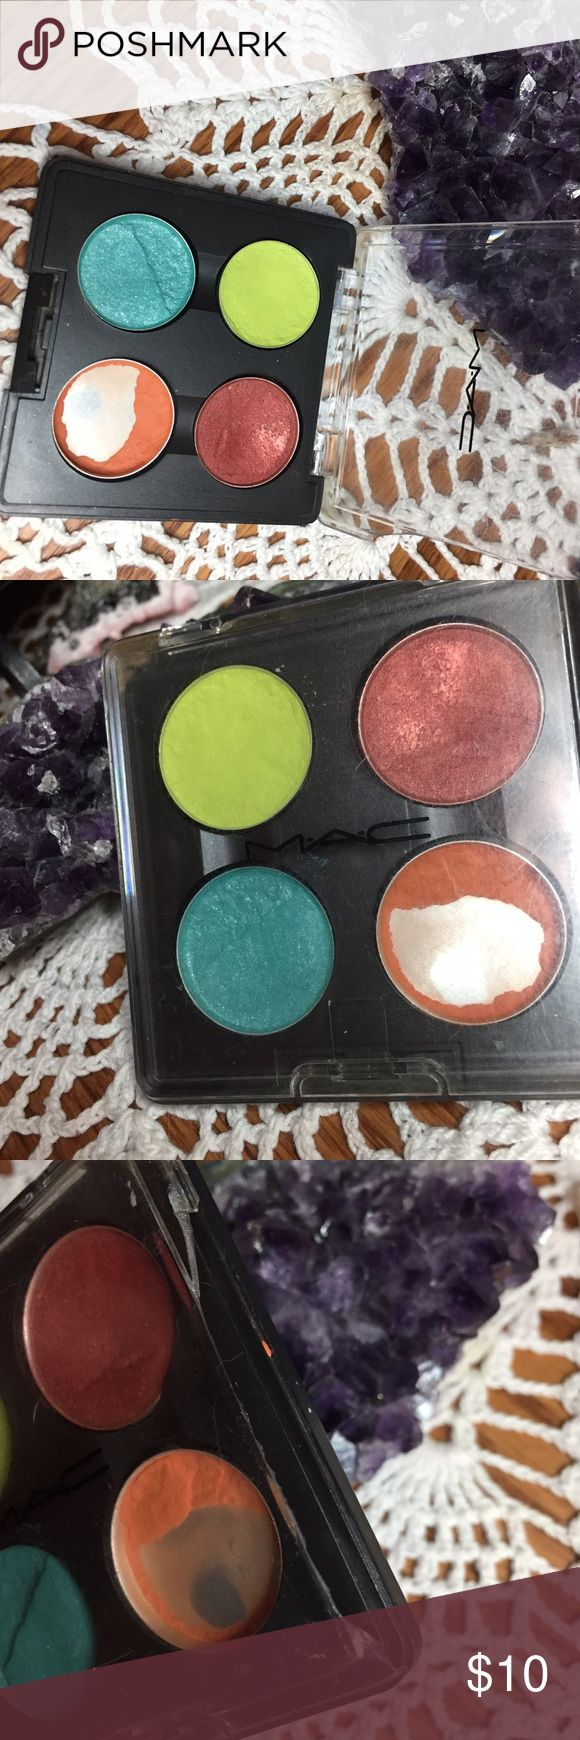 Mac Cosmetics quad Definitely well loved but no longer used due to Mac not being cruelty free. Damage to palette is shown as well as colours. Everything has been fully sanitized. Bundle and save 20% MAC Cosmetics Makeup Eyeshadow